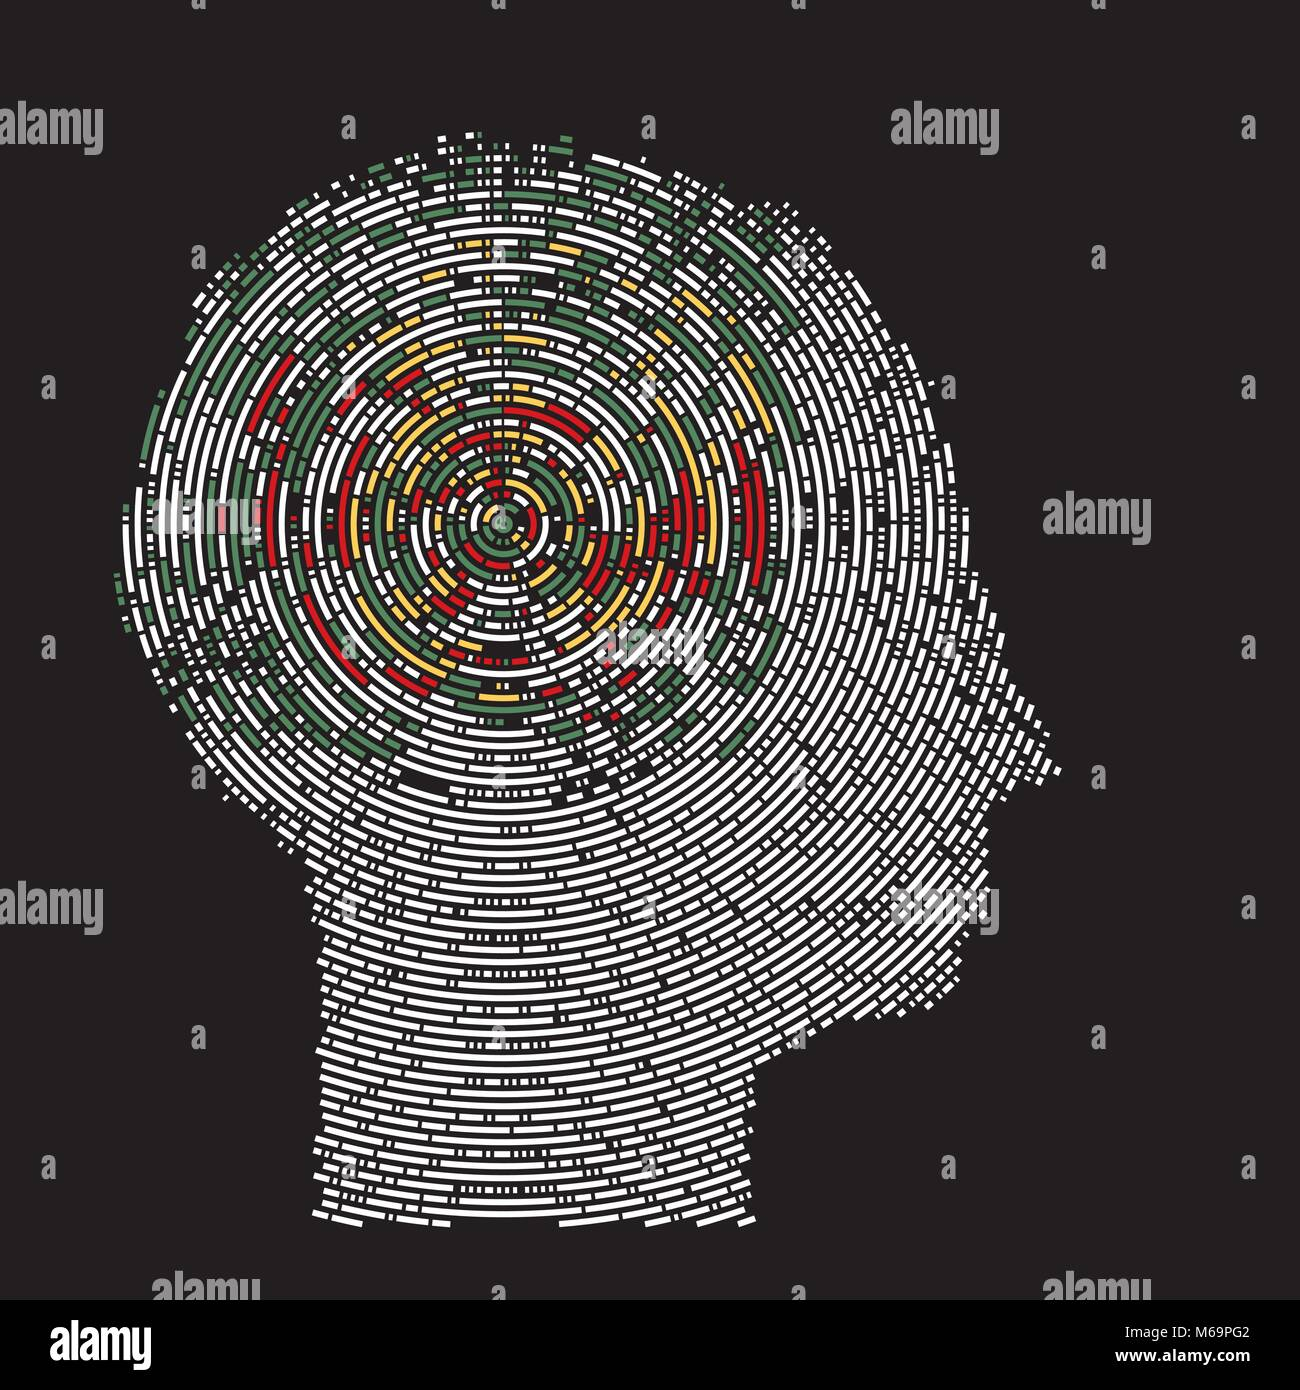 deep thoughts imaging  brain scan - Stock Image